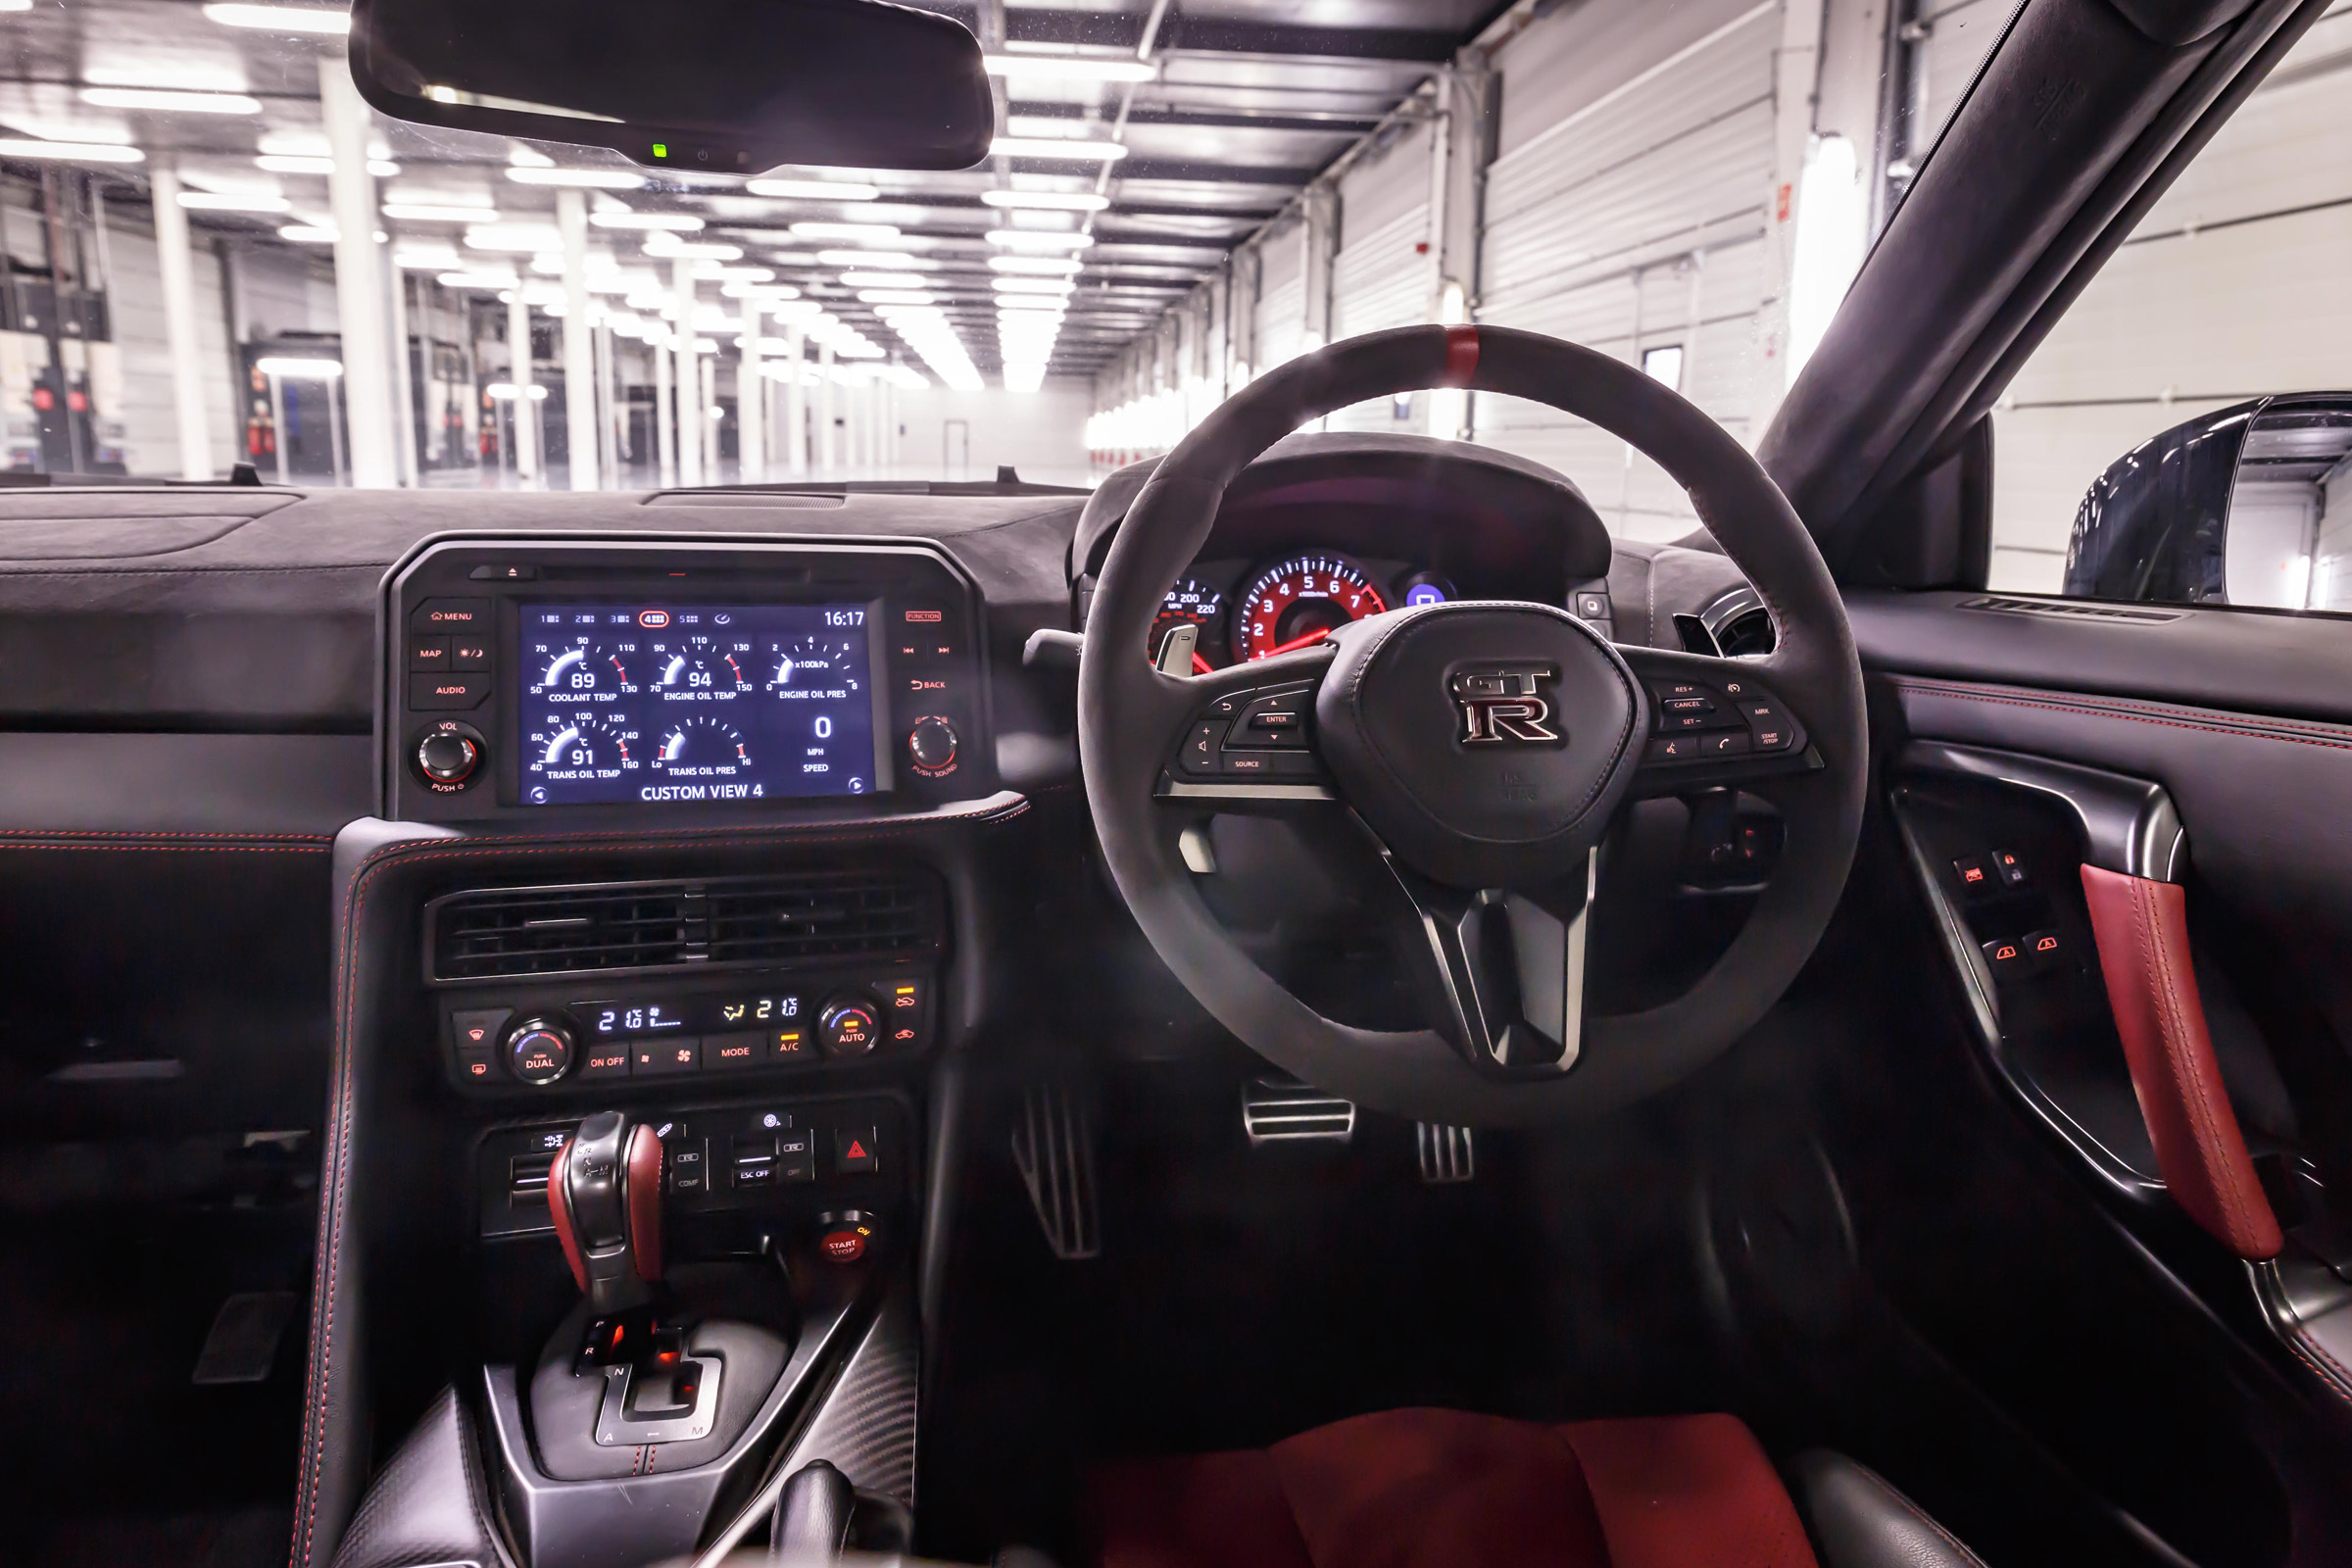 2017 Nissan GT R NISMO Interior View Steering And Dashboard (Photo 15 of 22)